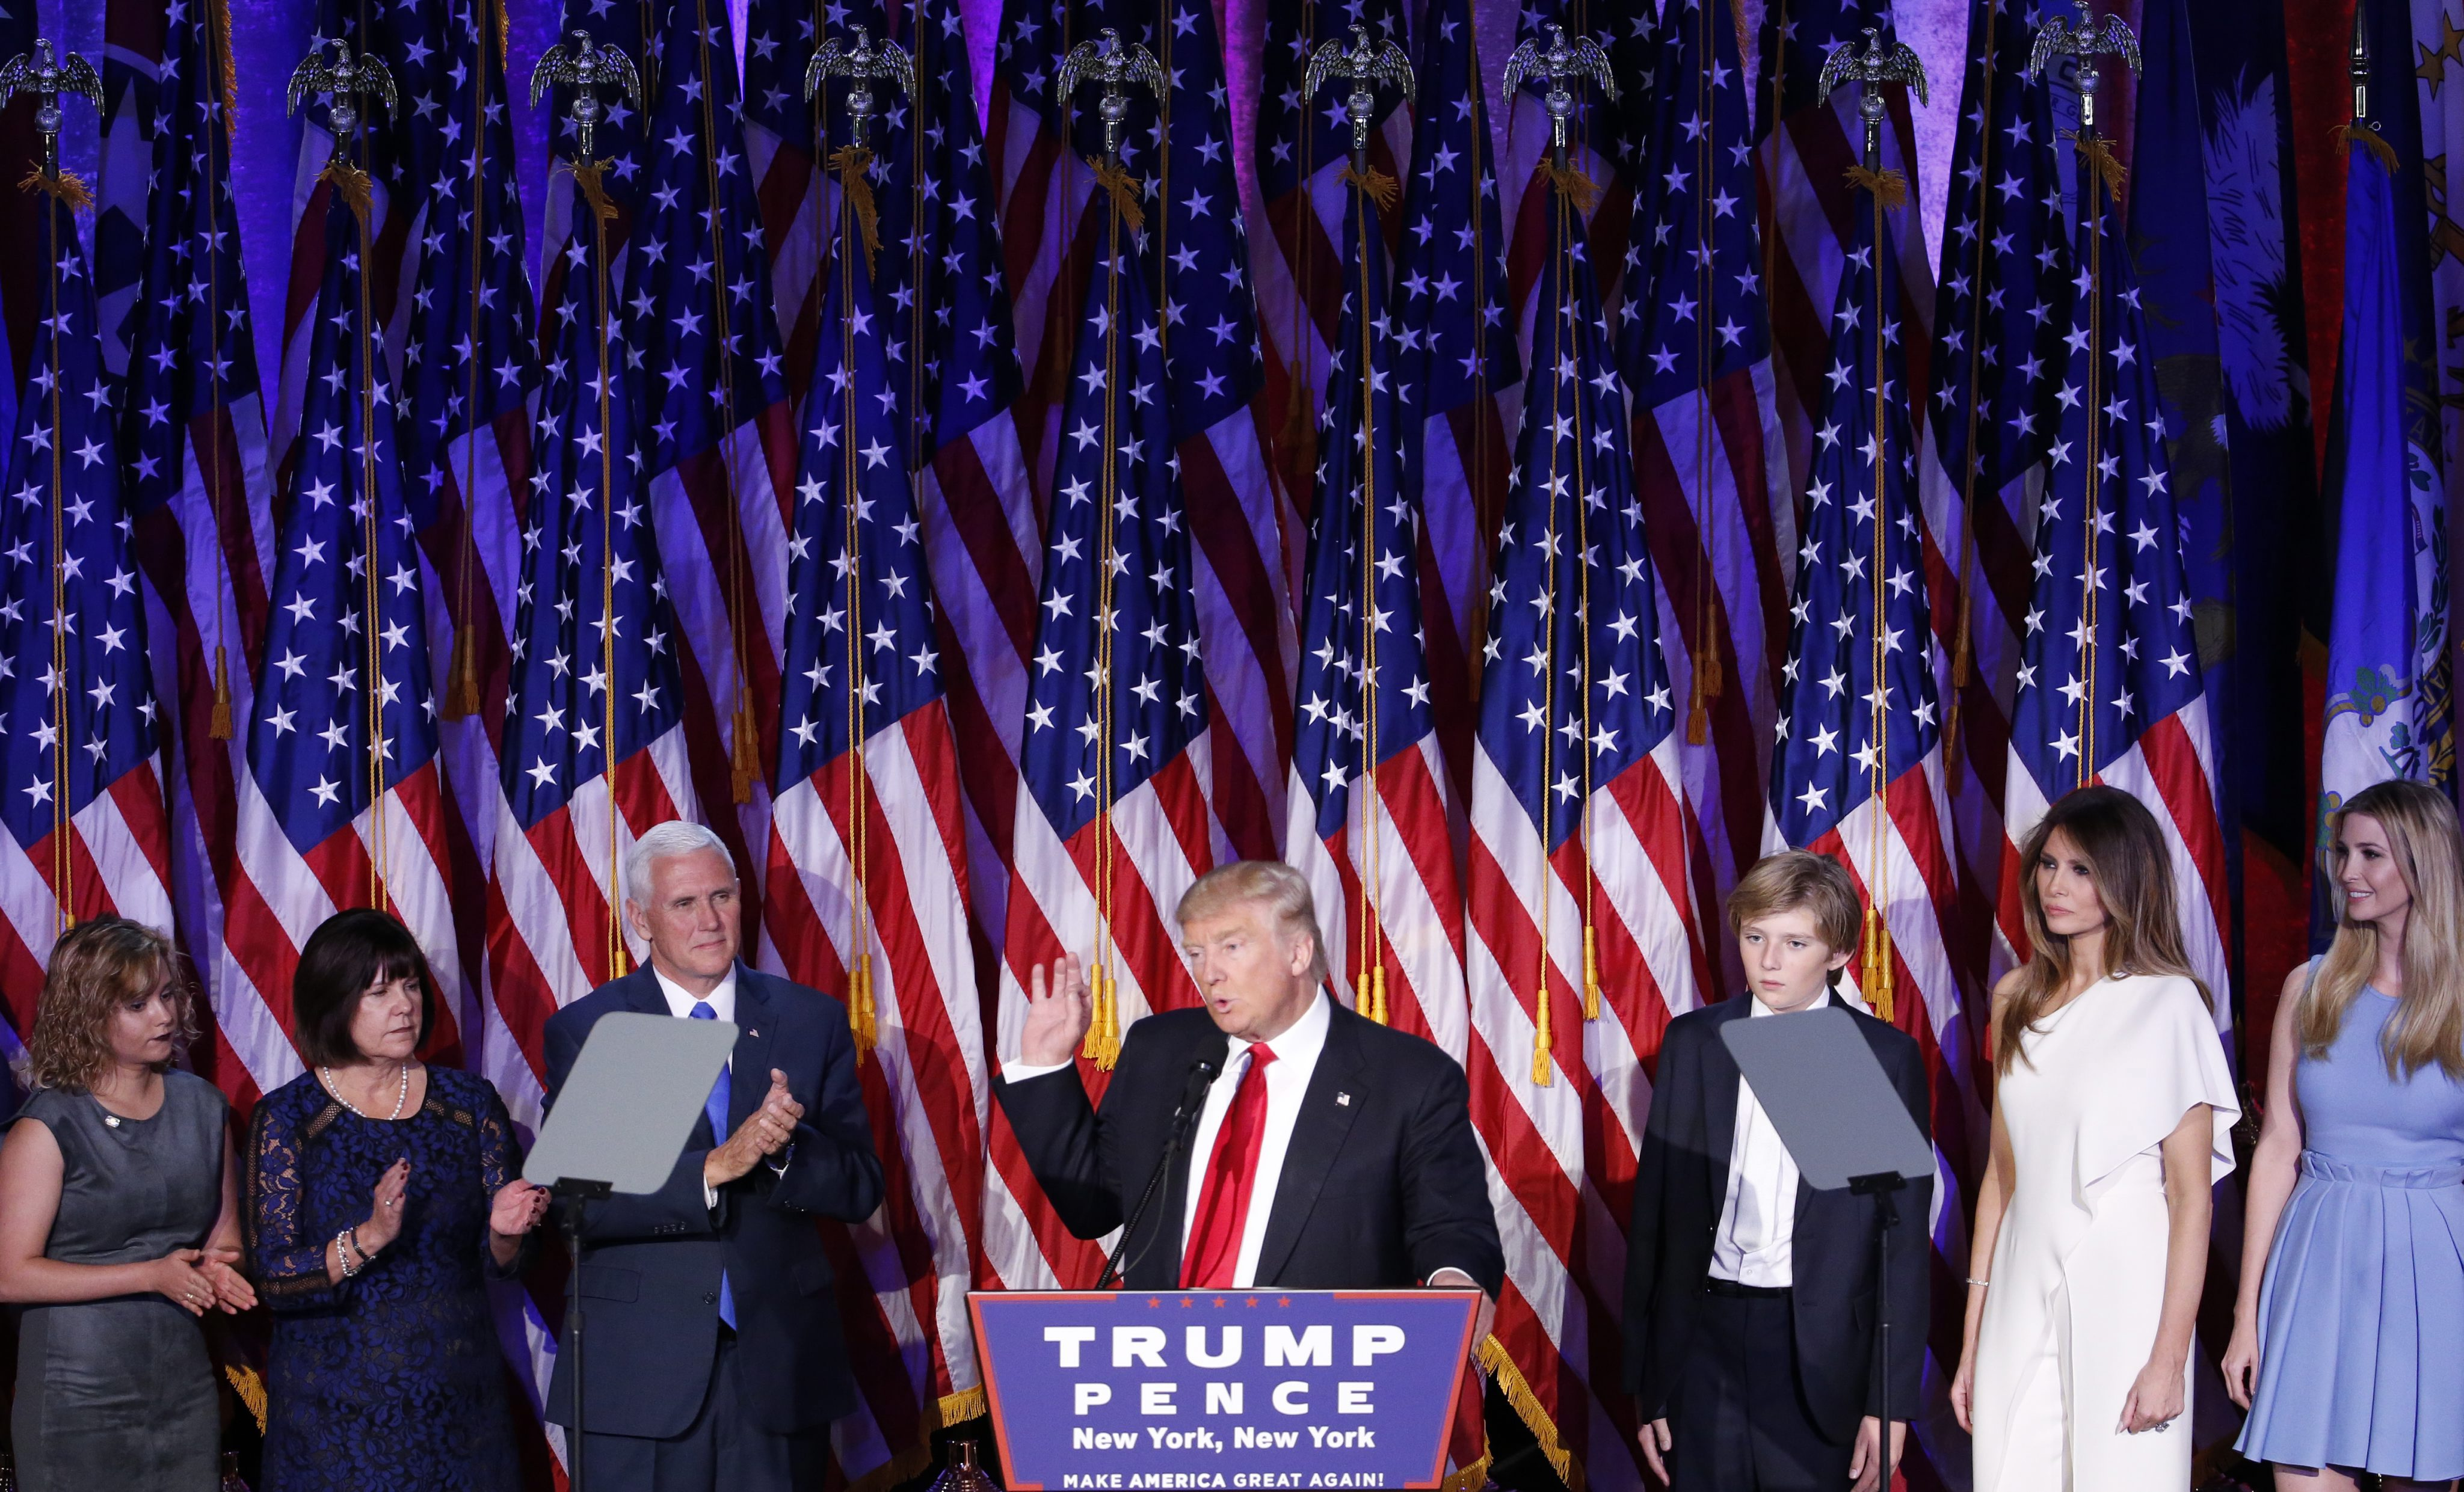 epa05623975 US President-elect Donald Trump (C) speaks on stage at his 2016 US presidential Election Night event, as votes continue to be counted at the New York Hilton Midtown in New York, New York, USA, 08 November 20